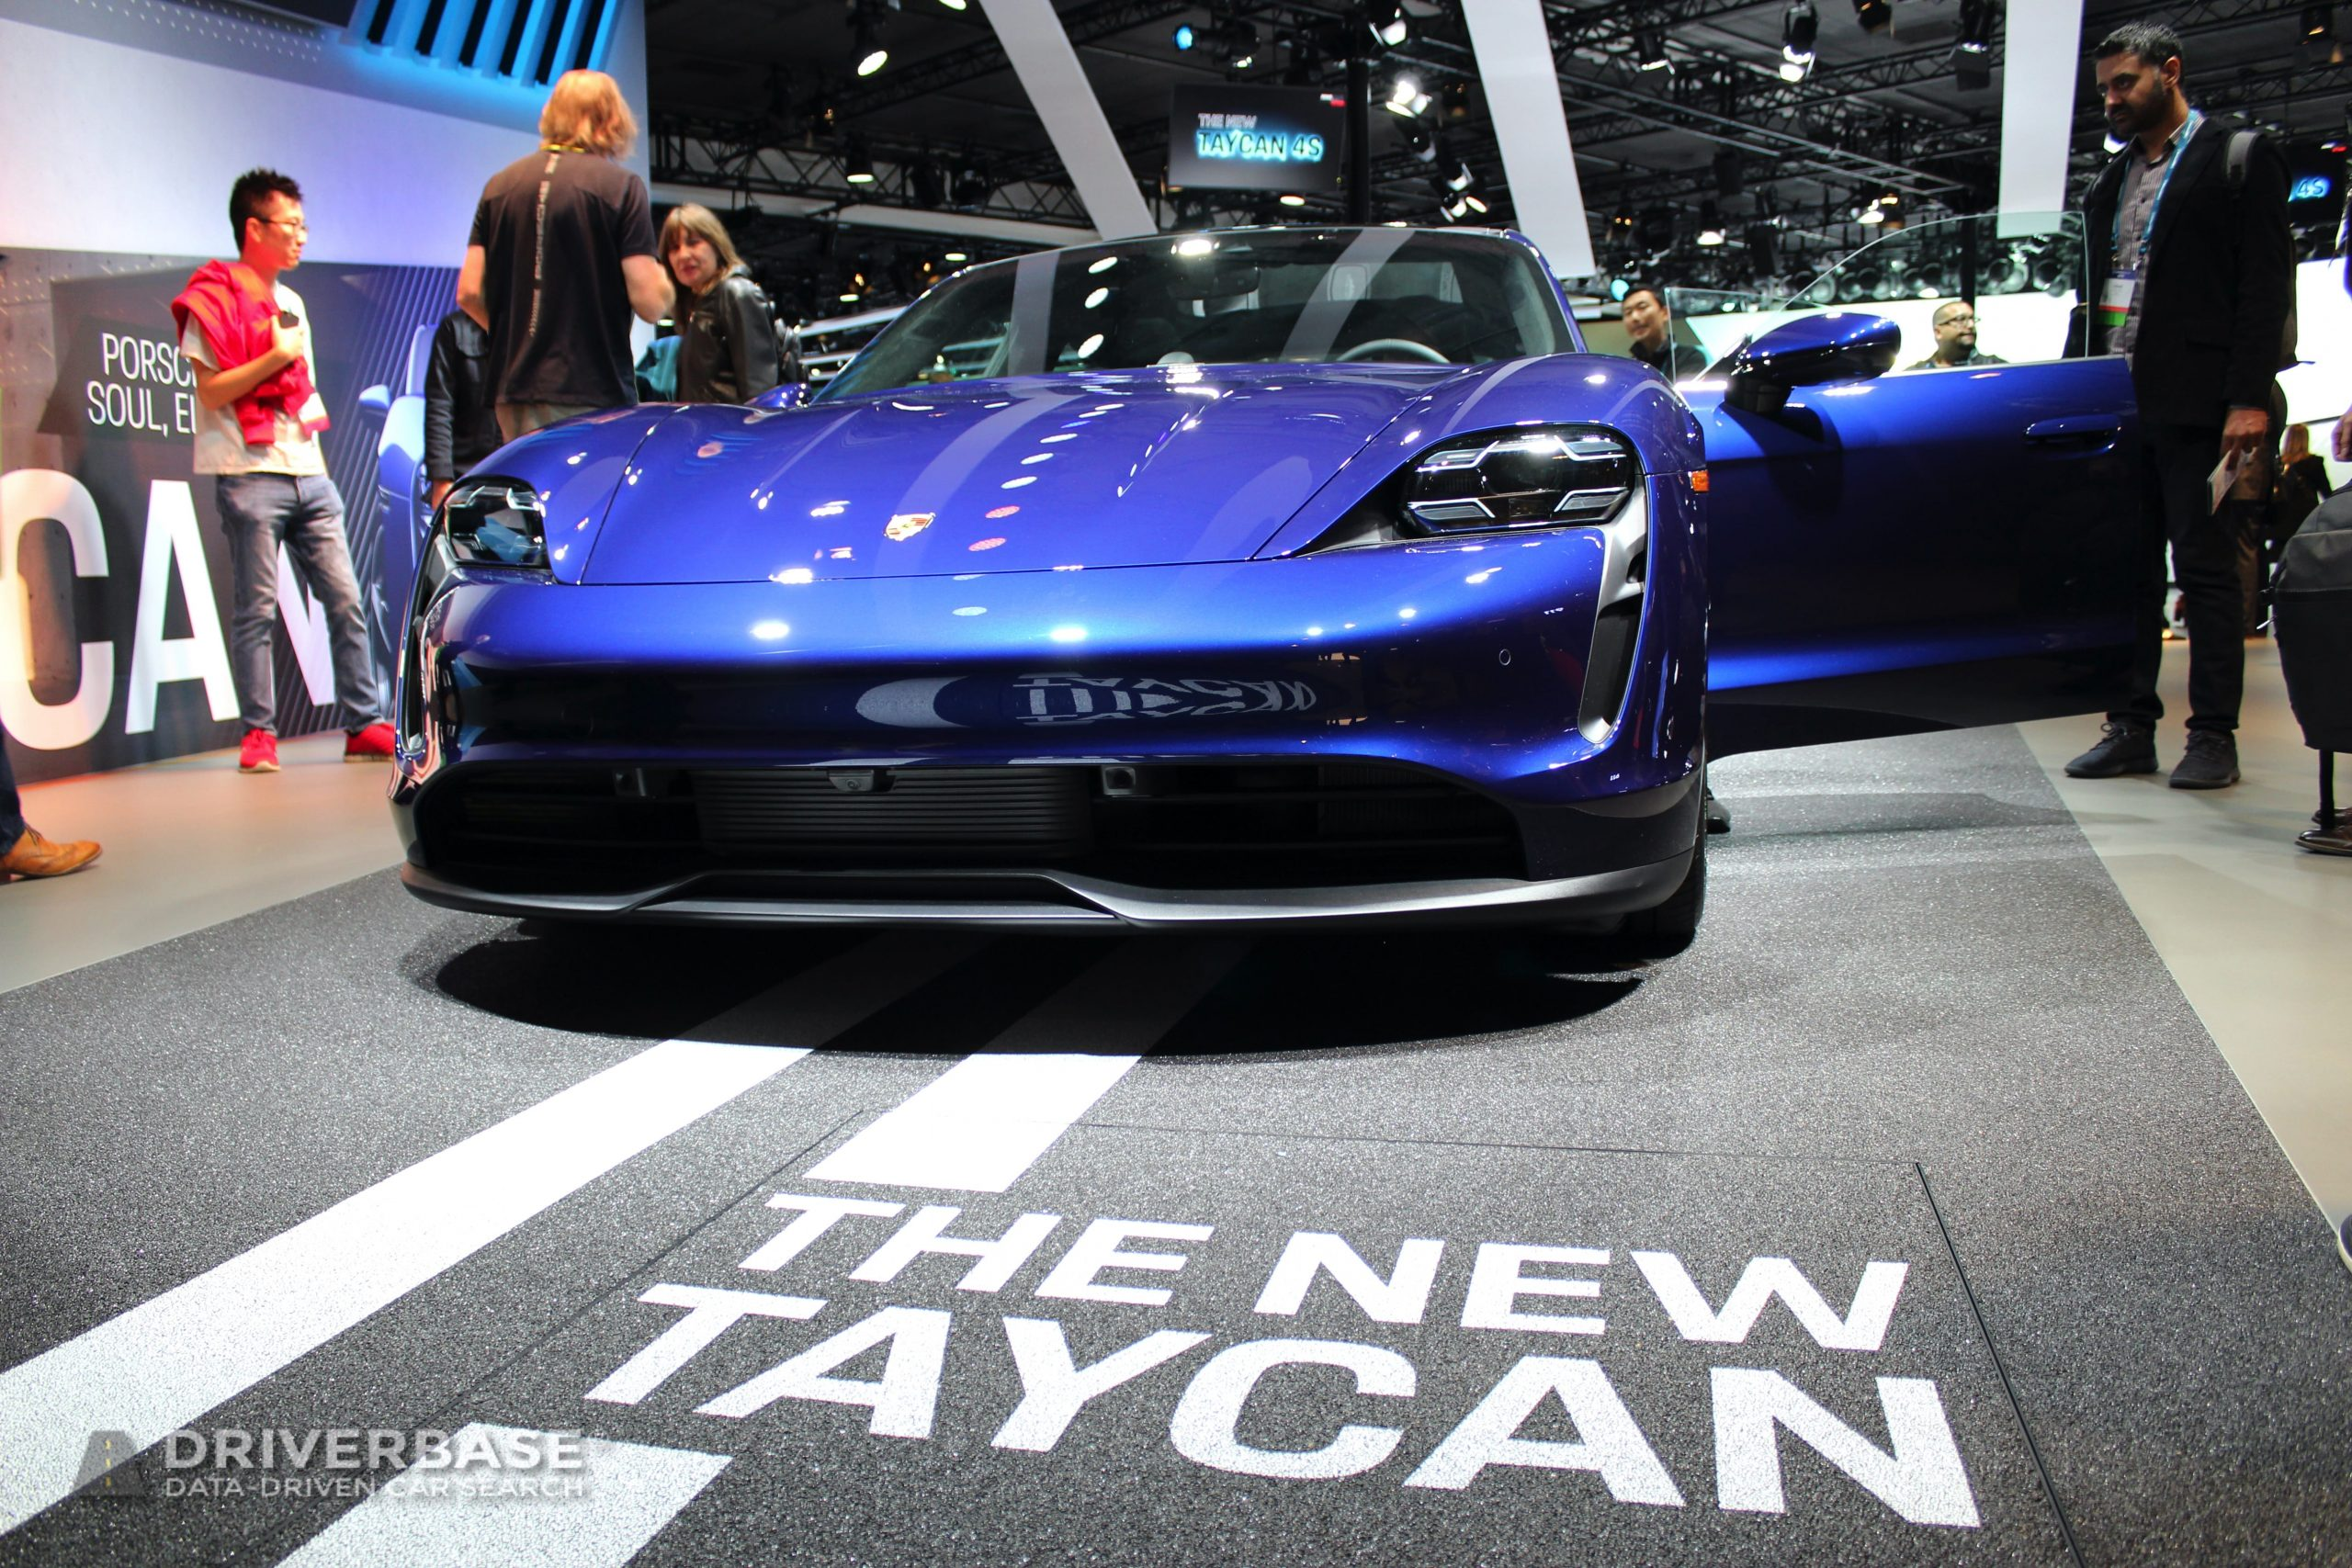 2020 Porsche Taycan 4S Electric at the 2019 Los Angeles Auto Show